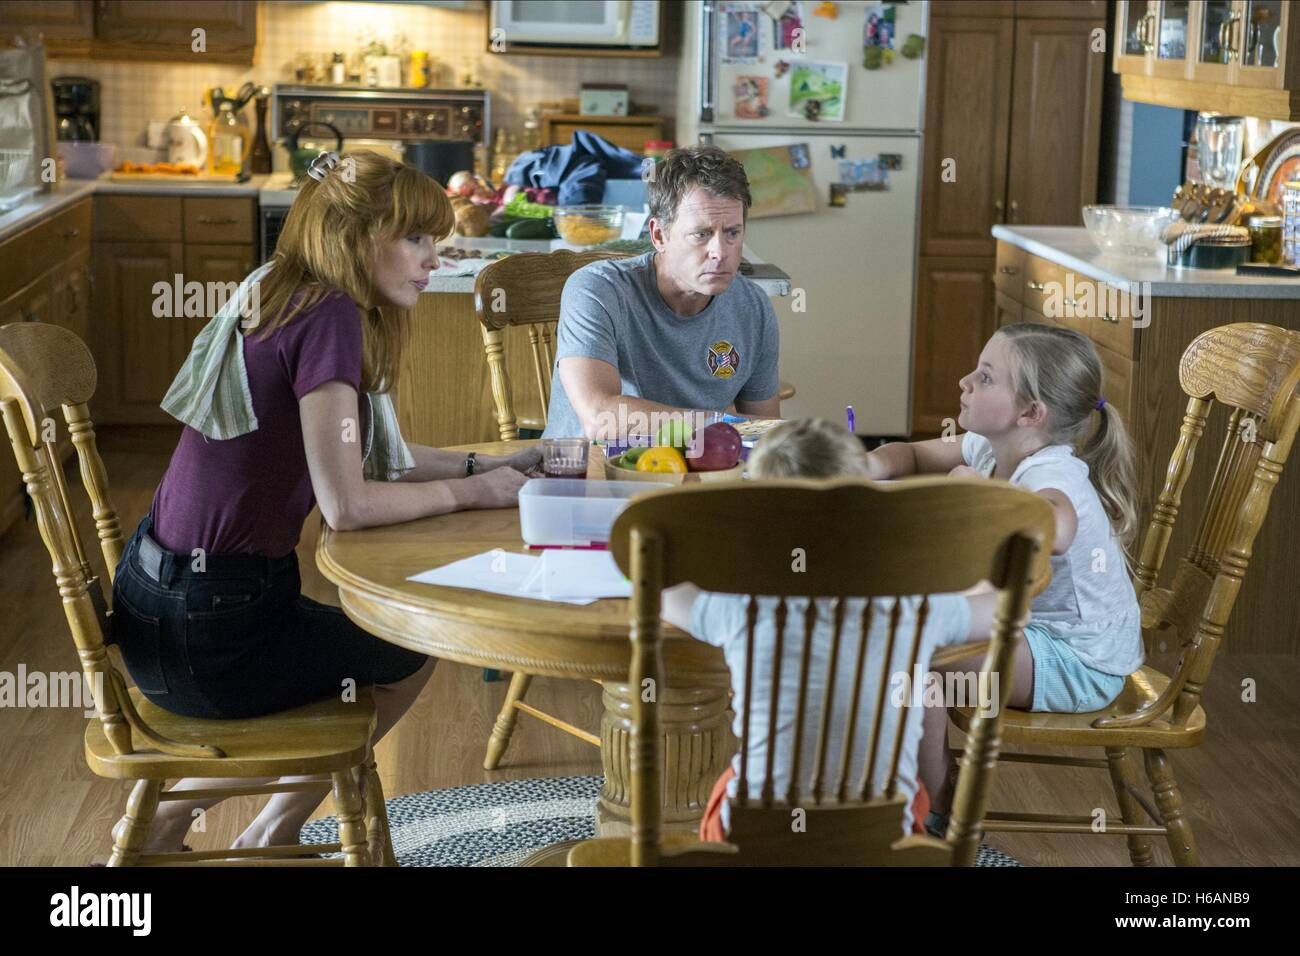 KELLY REILLY GREG KINNEAR CONNOR CORUM & LANE STYLES HEAVEN IS FOR REAL (2014) - Stock Image